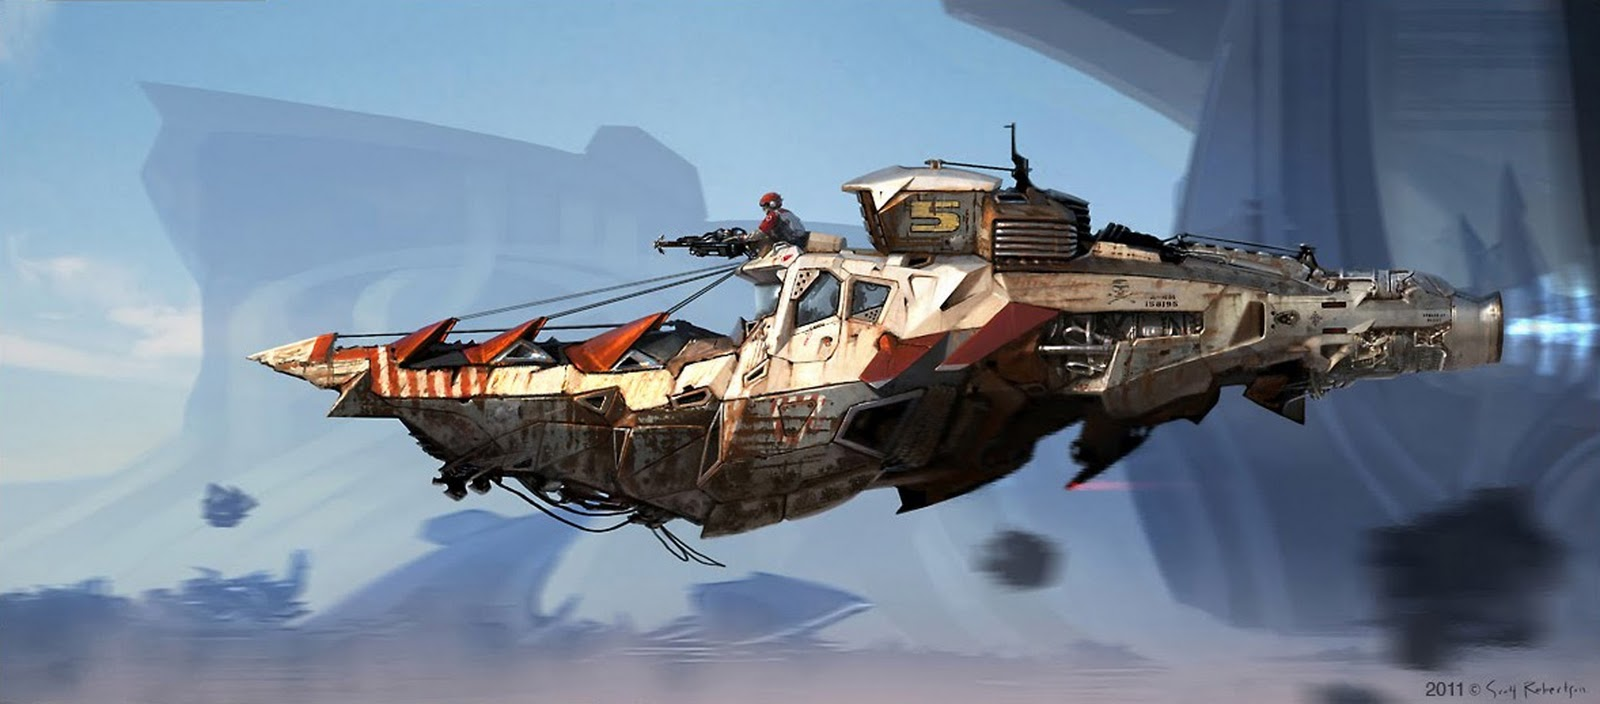 Jumping June Bugs! :: June BoB Bombing Run  - Page 3 Steampunk+concept+art+space+ship+cruiser+hyper+jet+scott+robertson+blast+2